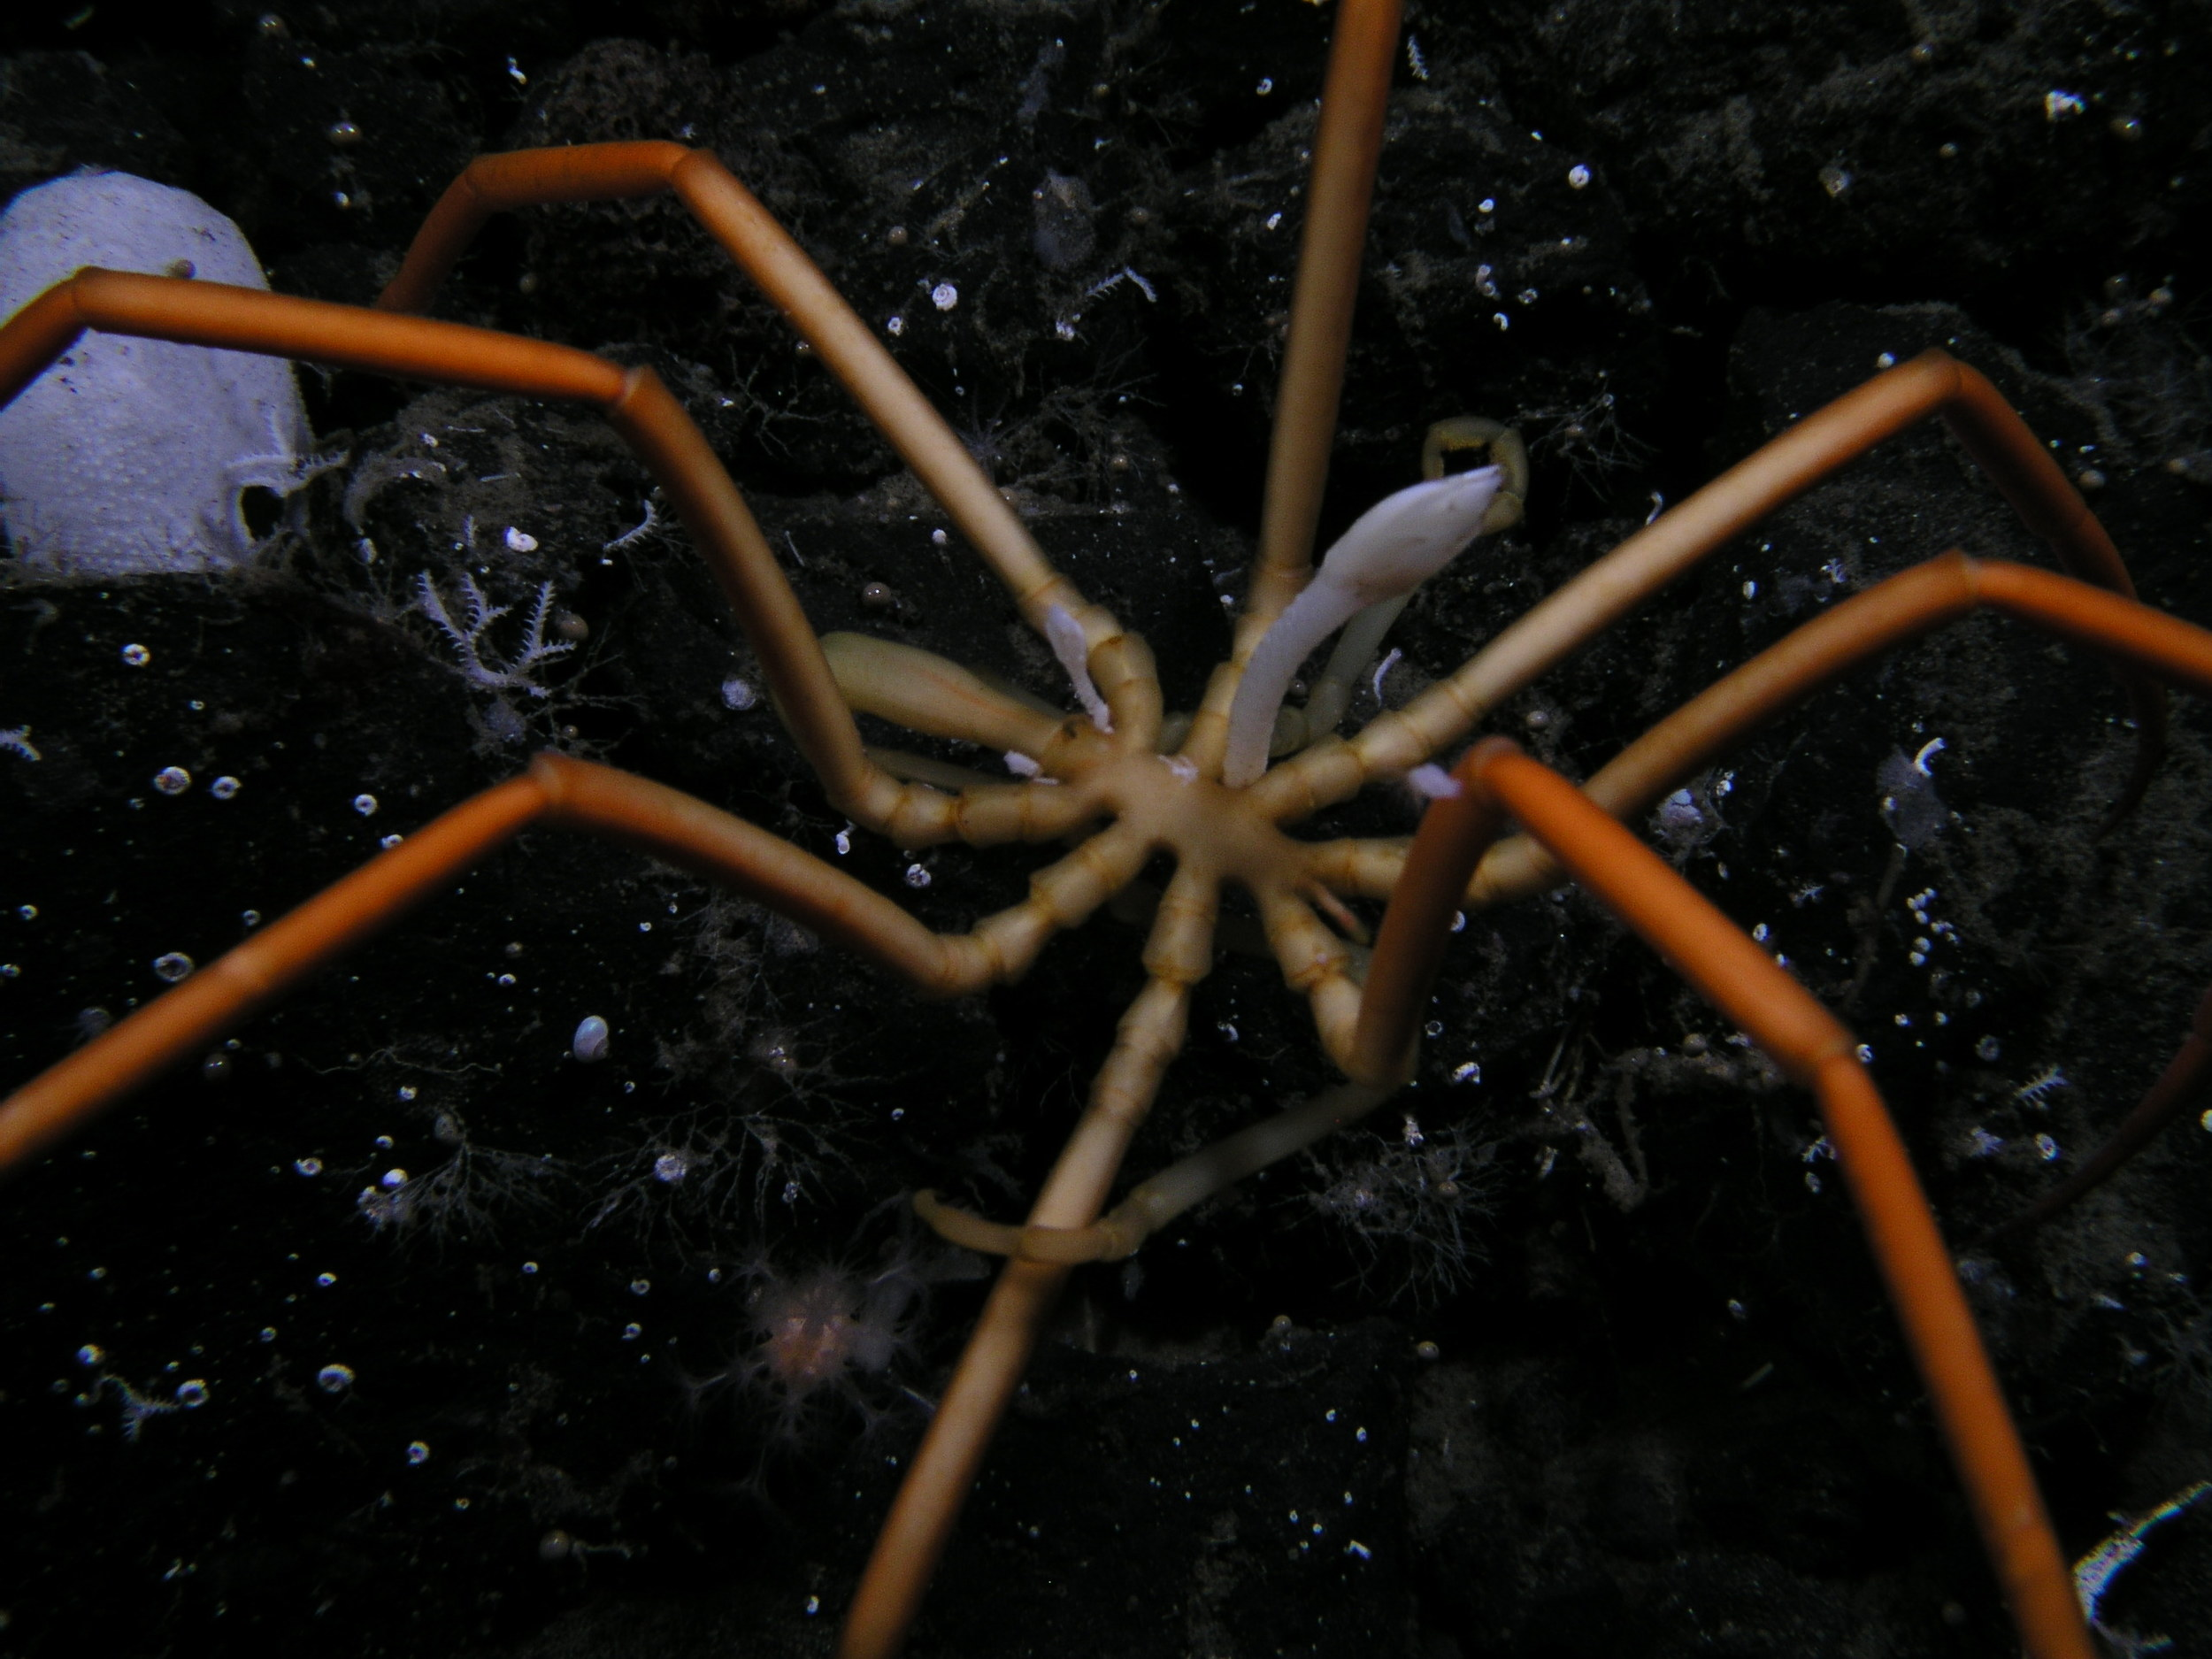 Large antarctic sea spider. This one has a barnacle growing off its thorax.